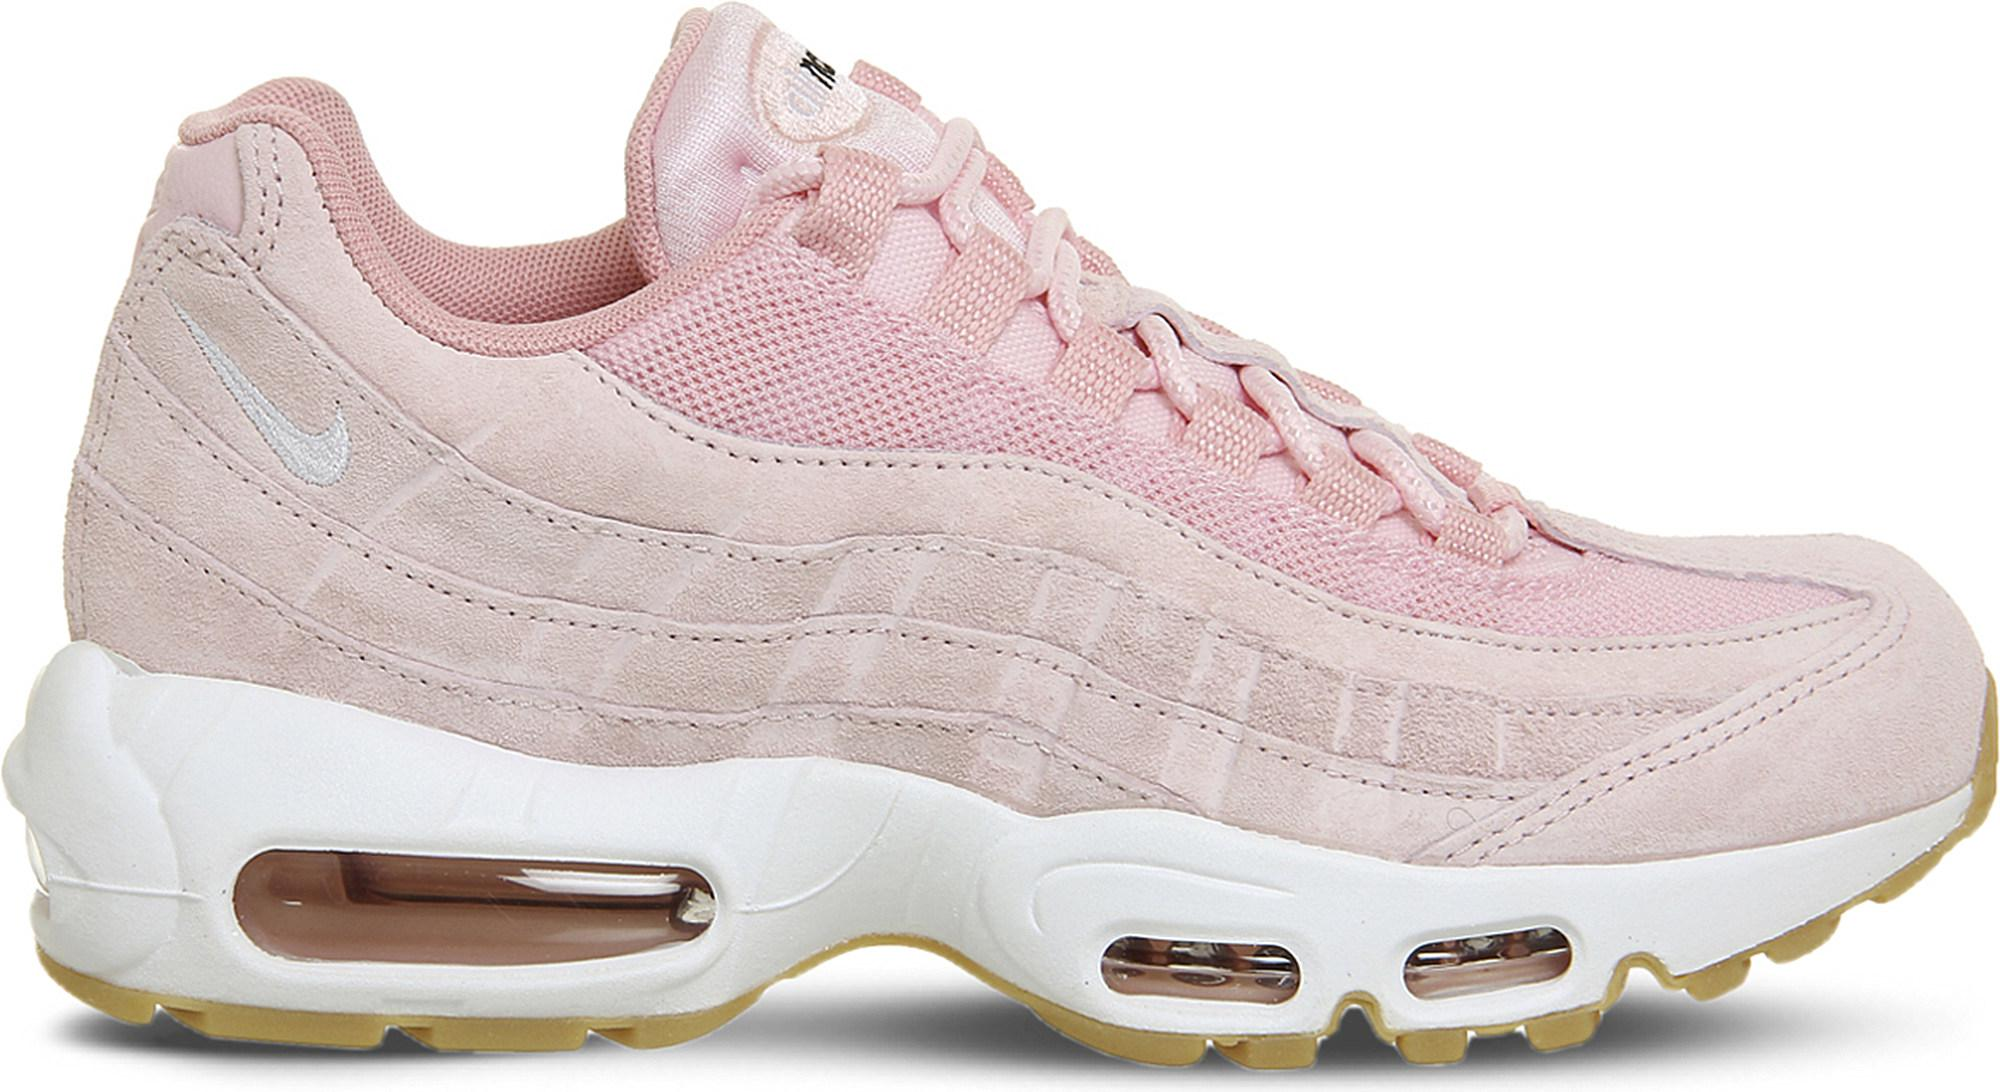 sale retailer 2ecae e888e ... purchase lyst nike air max 95 suede and mesh trainers in pink 610e1  c84e0 ...